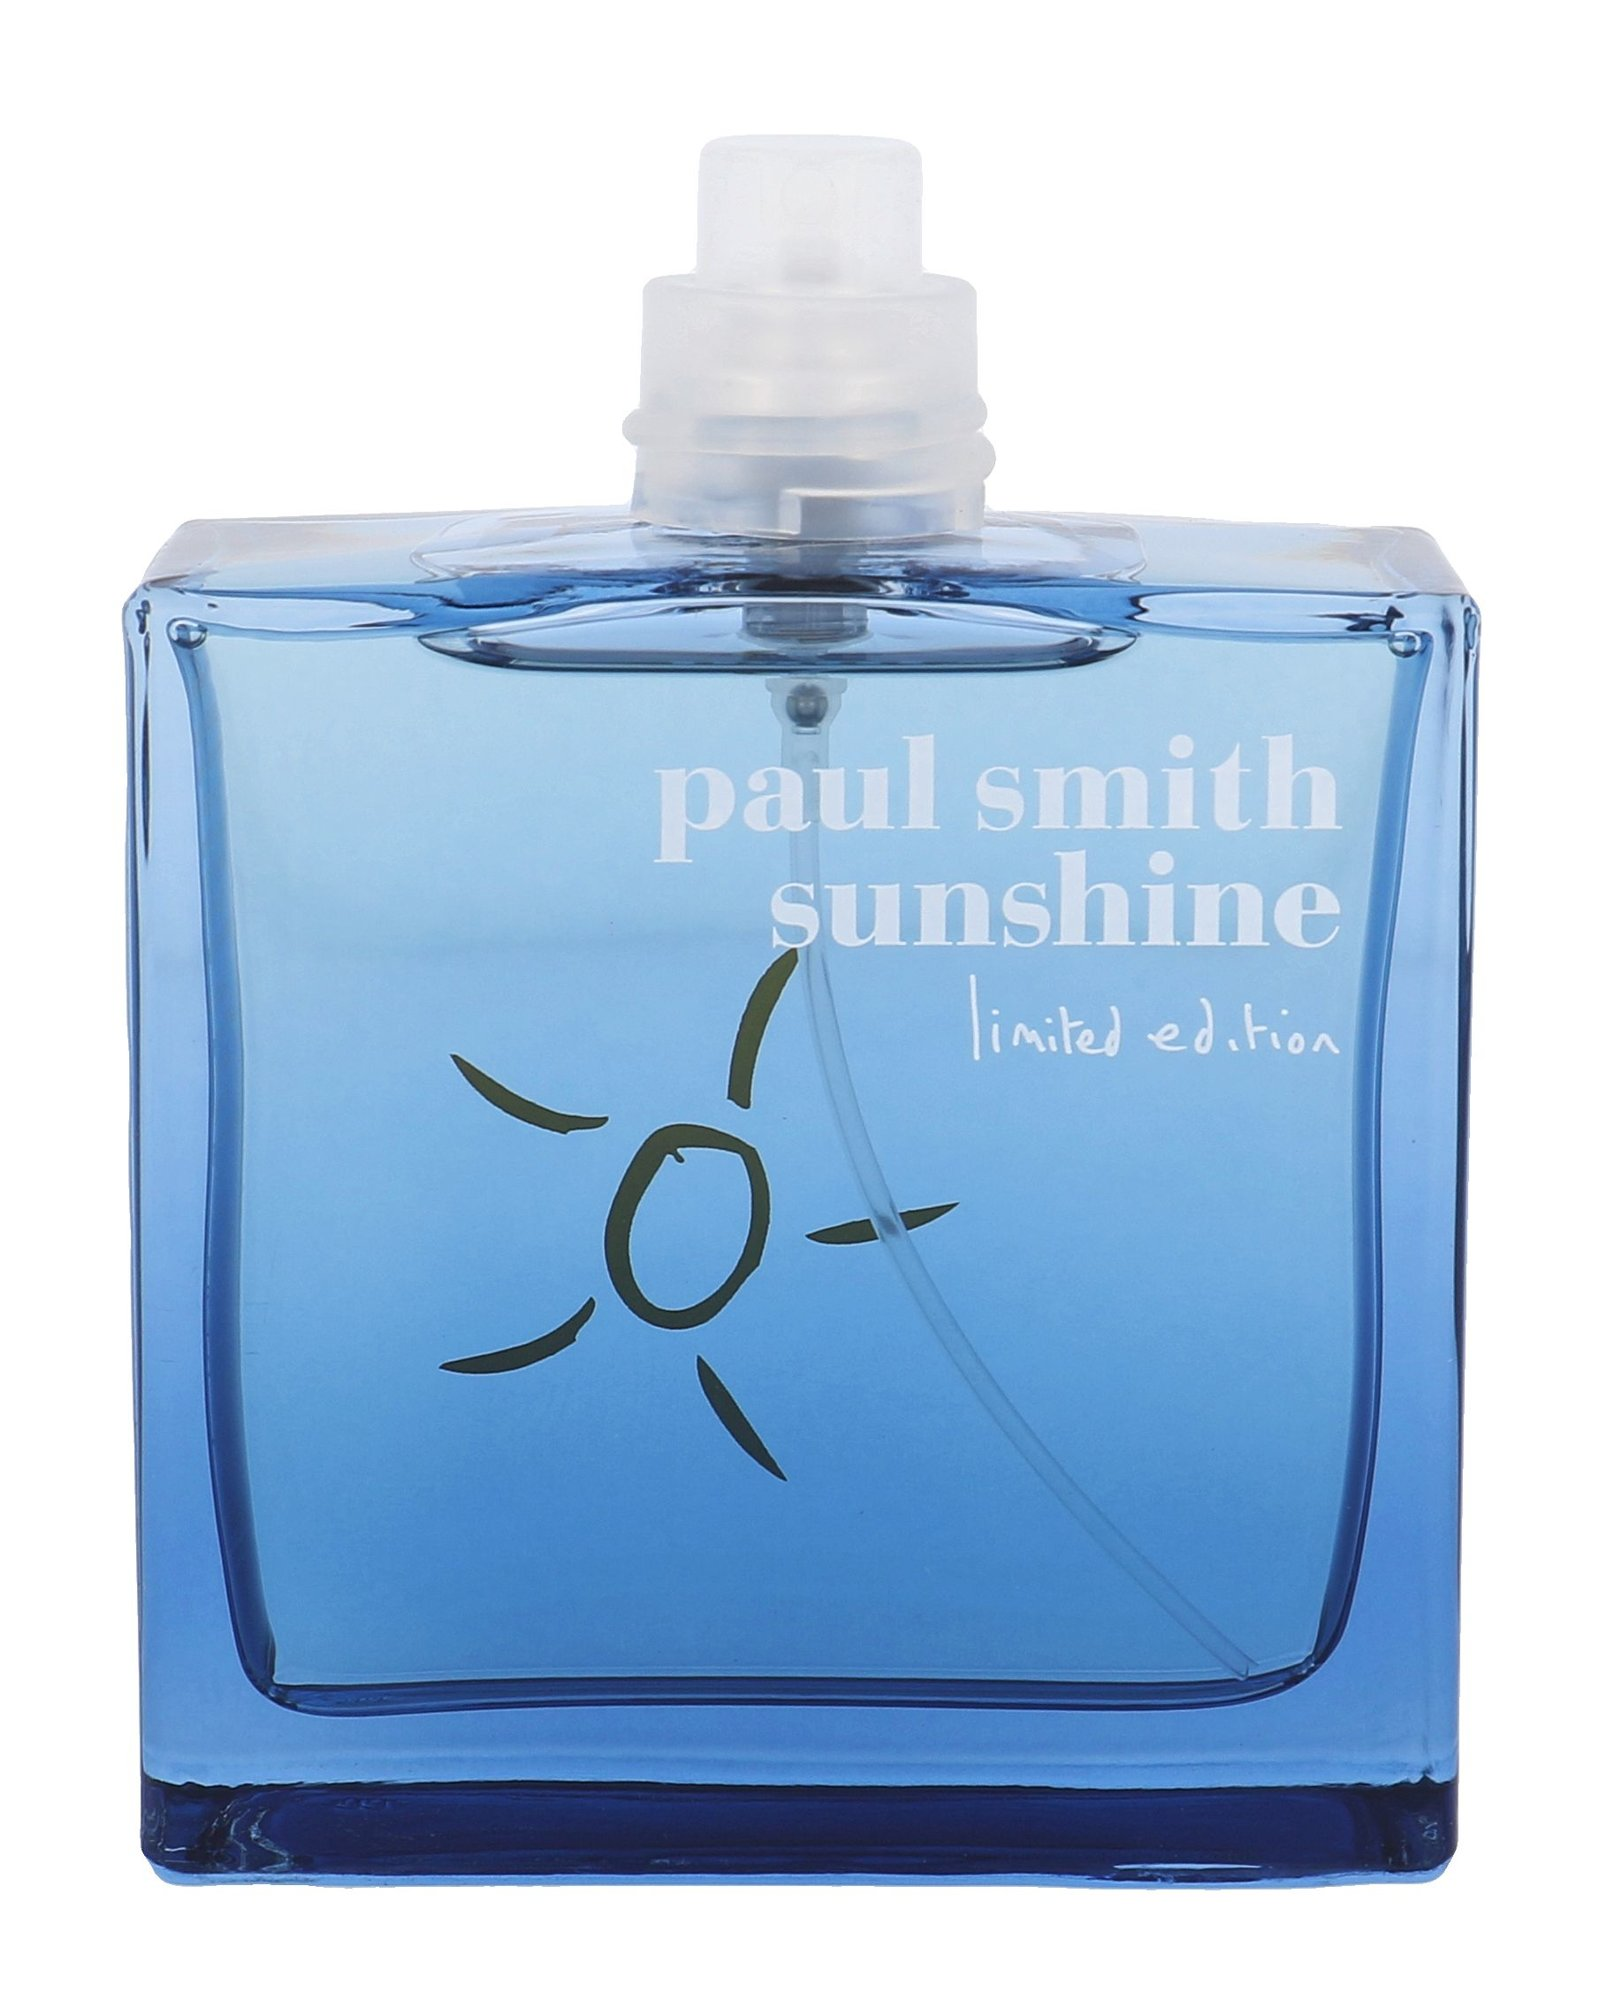 Paul Smith Sunshine 2014 EDT 100ml